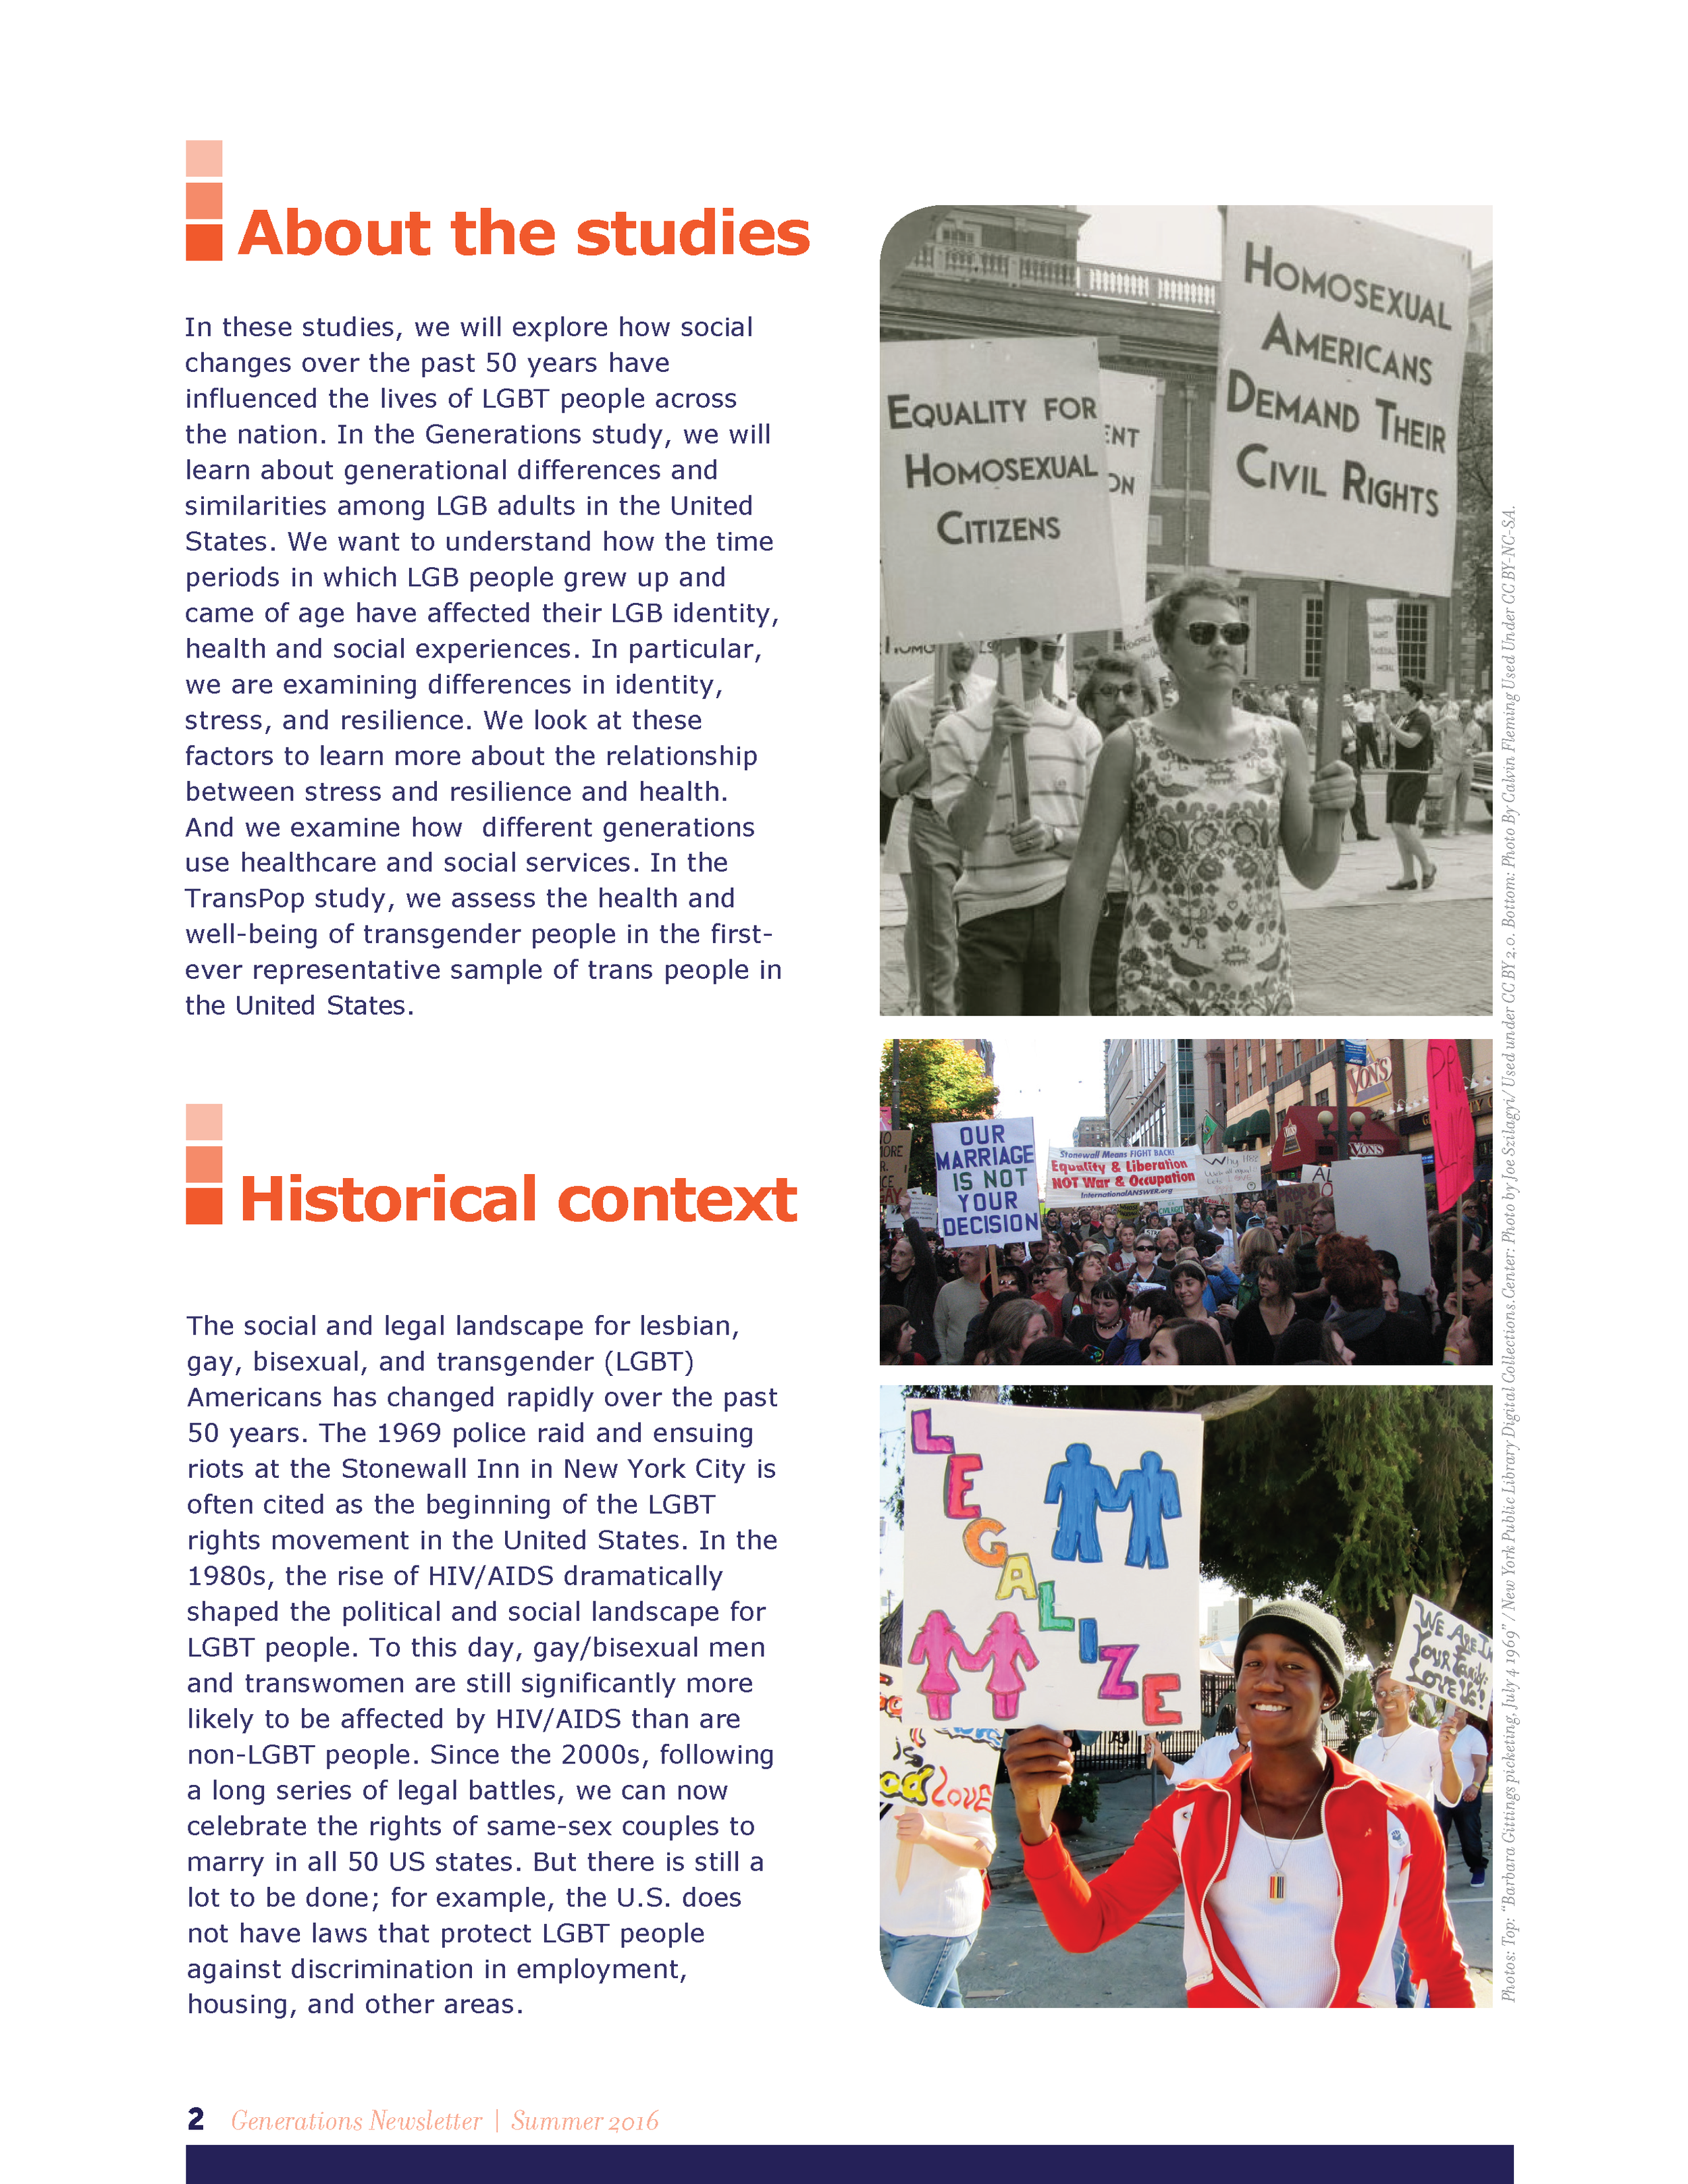 UCLAWI_GenerationsNewsletter_Summer2016_PRESS_final (new email add)_Page_2.png